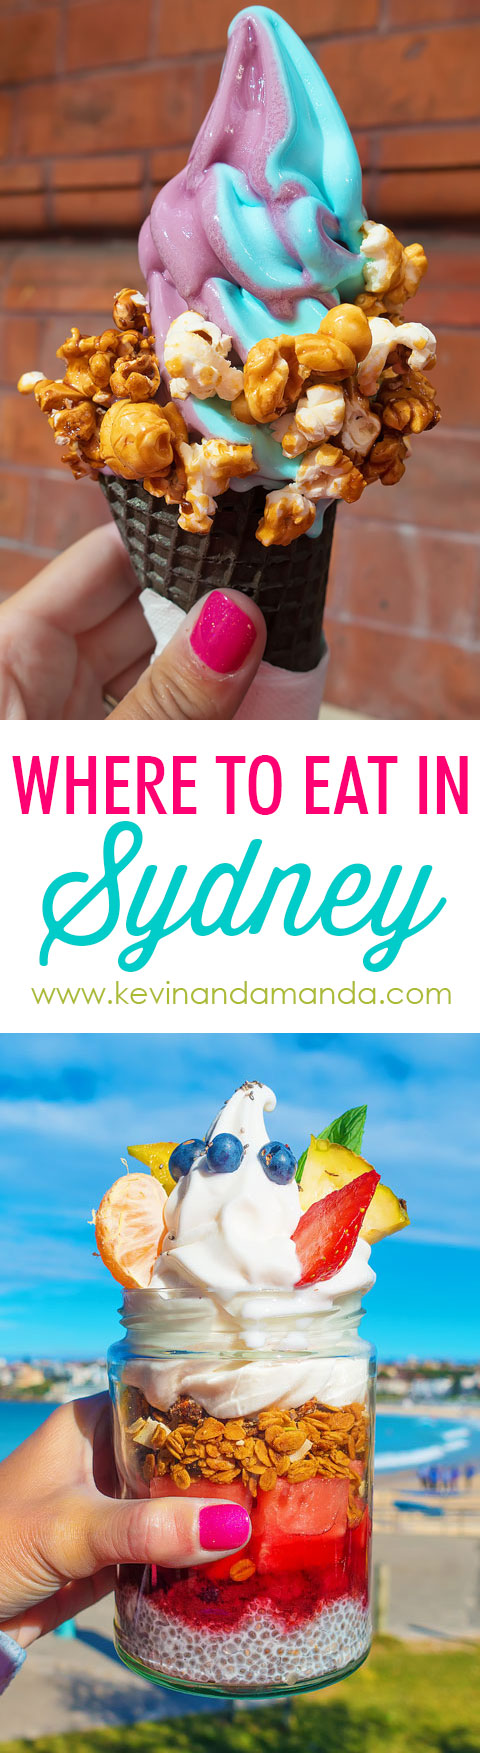 Best Sydney Restaurants - Australian Food Guide